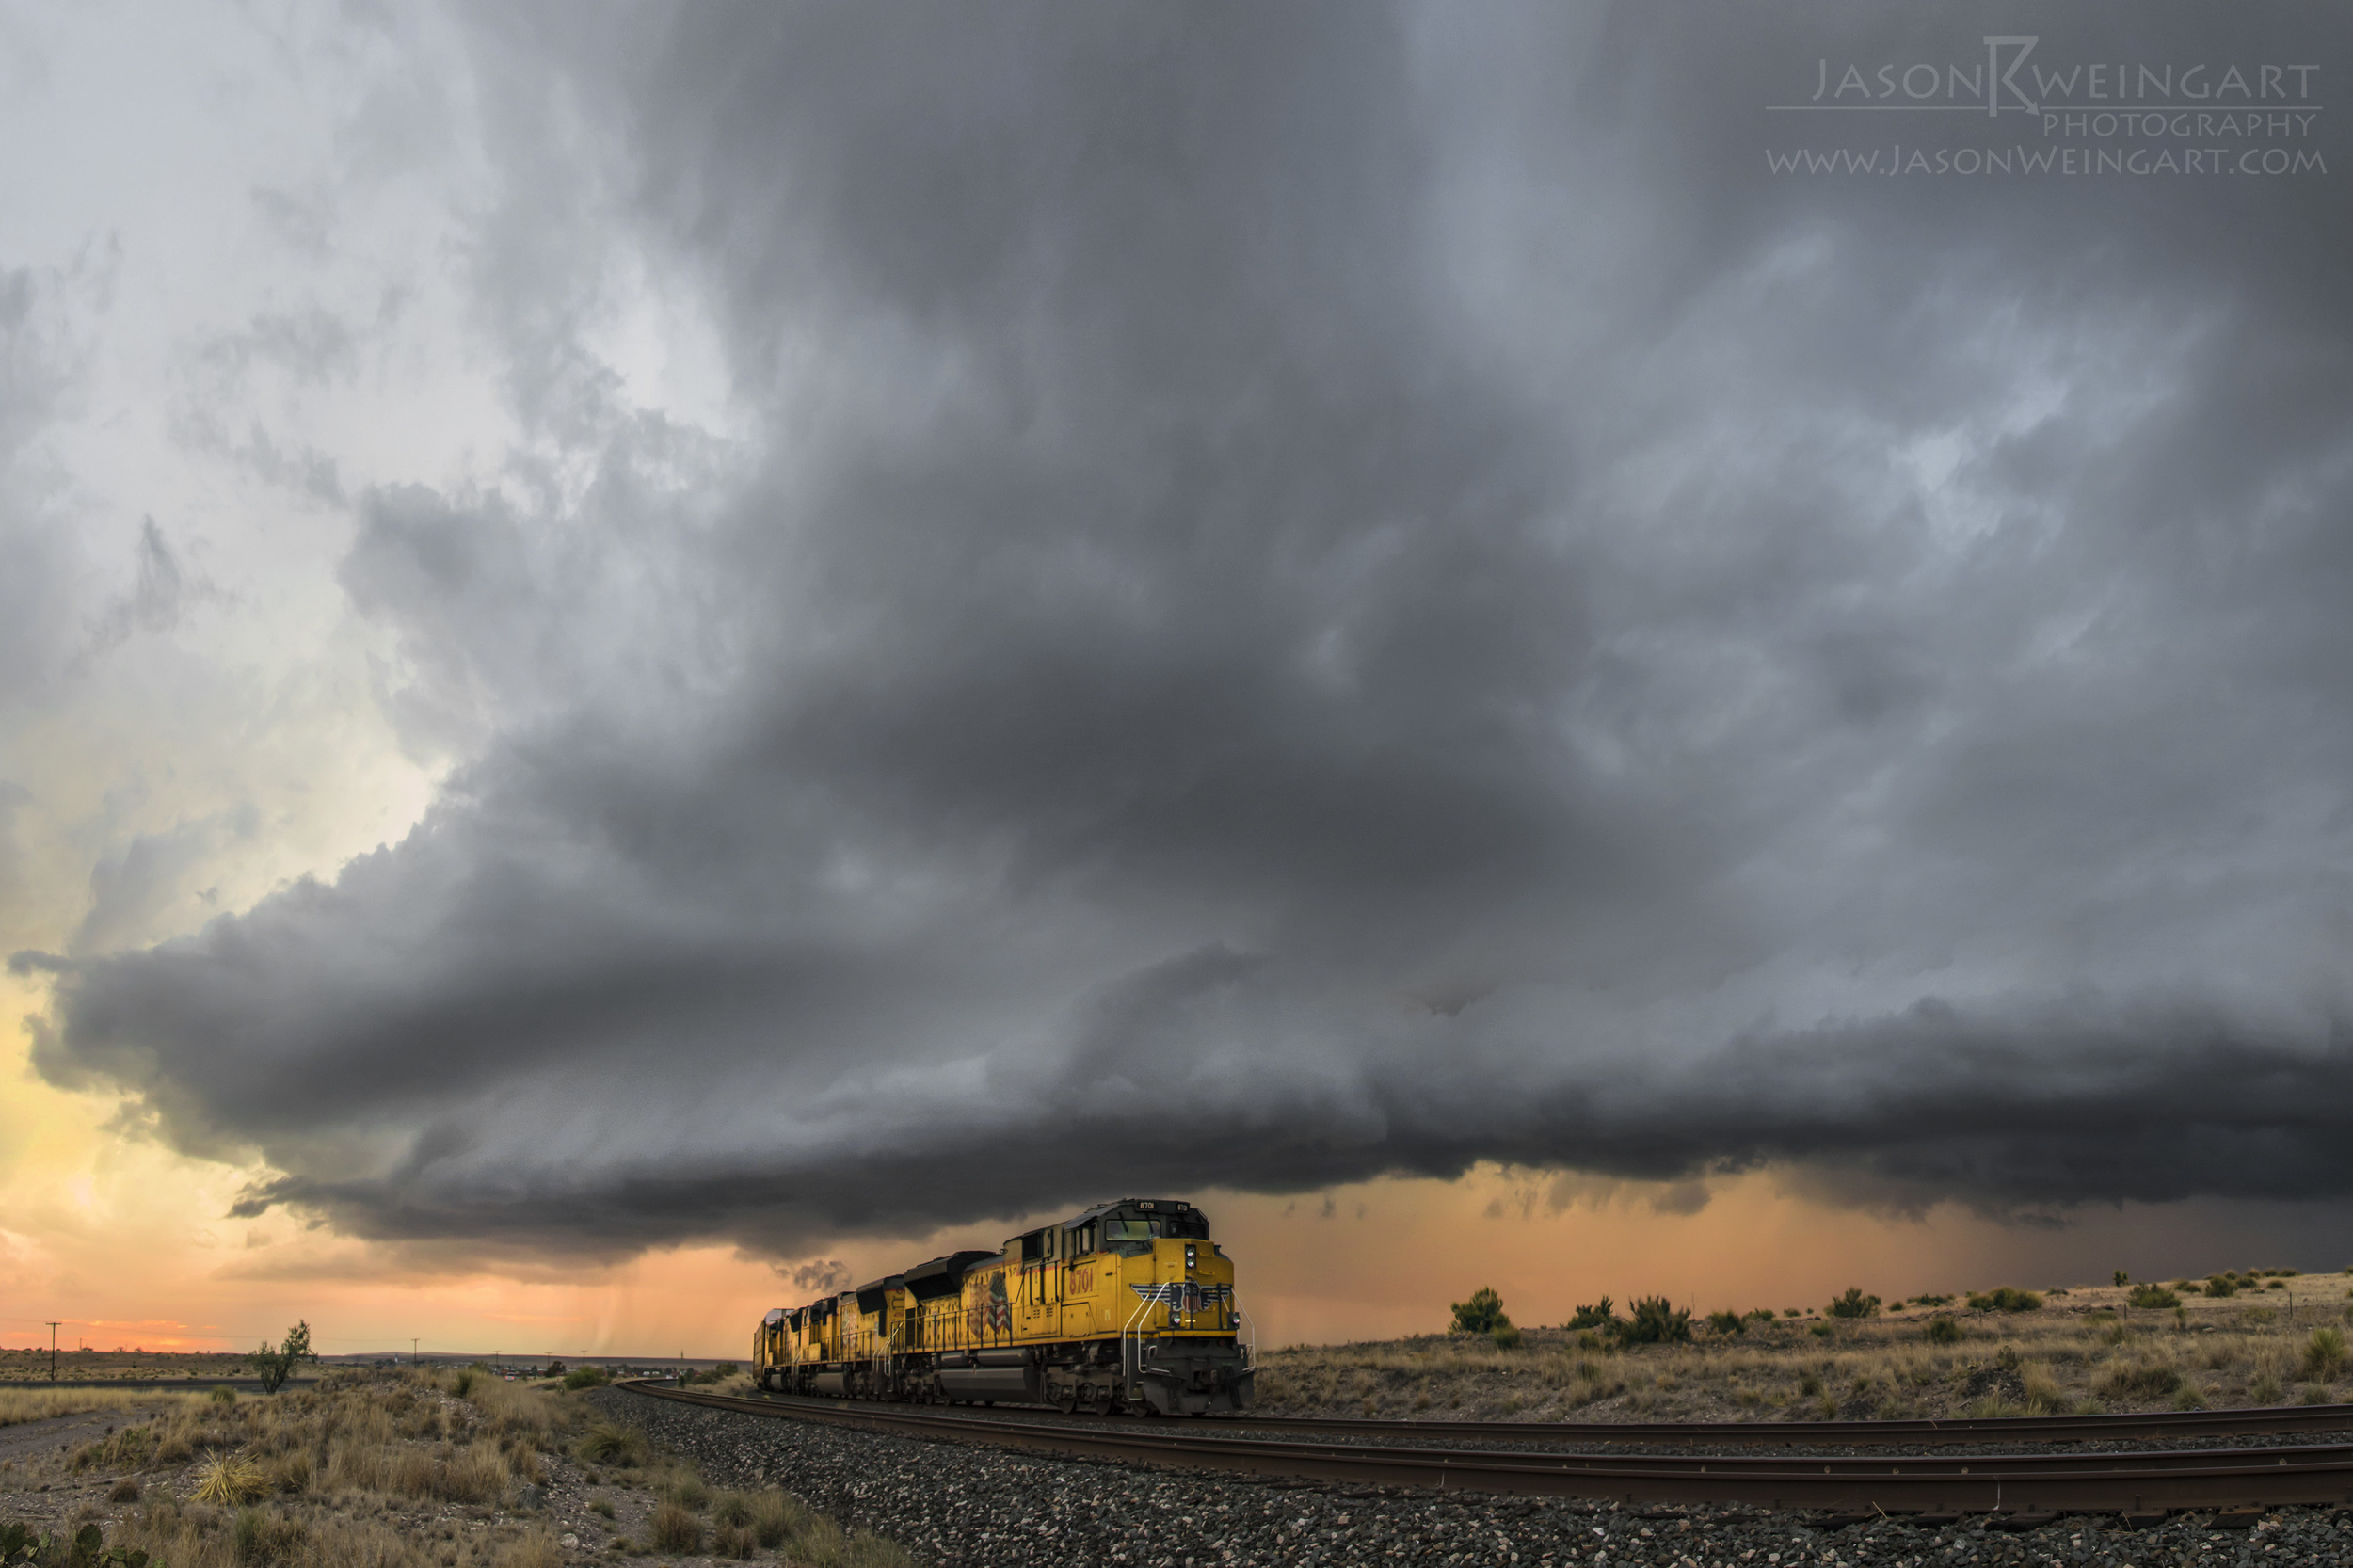 Union Pacific by Jason Weingart